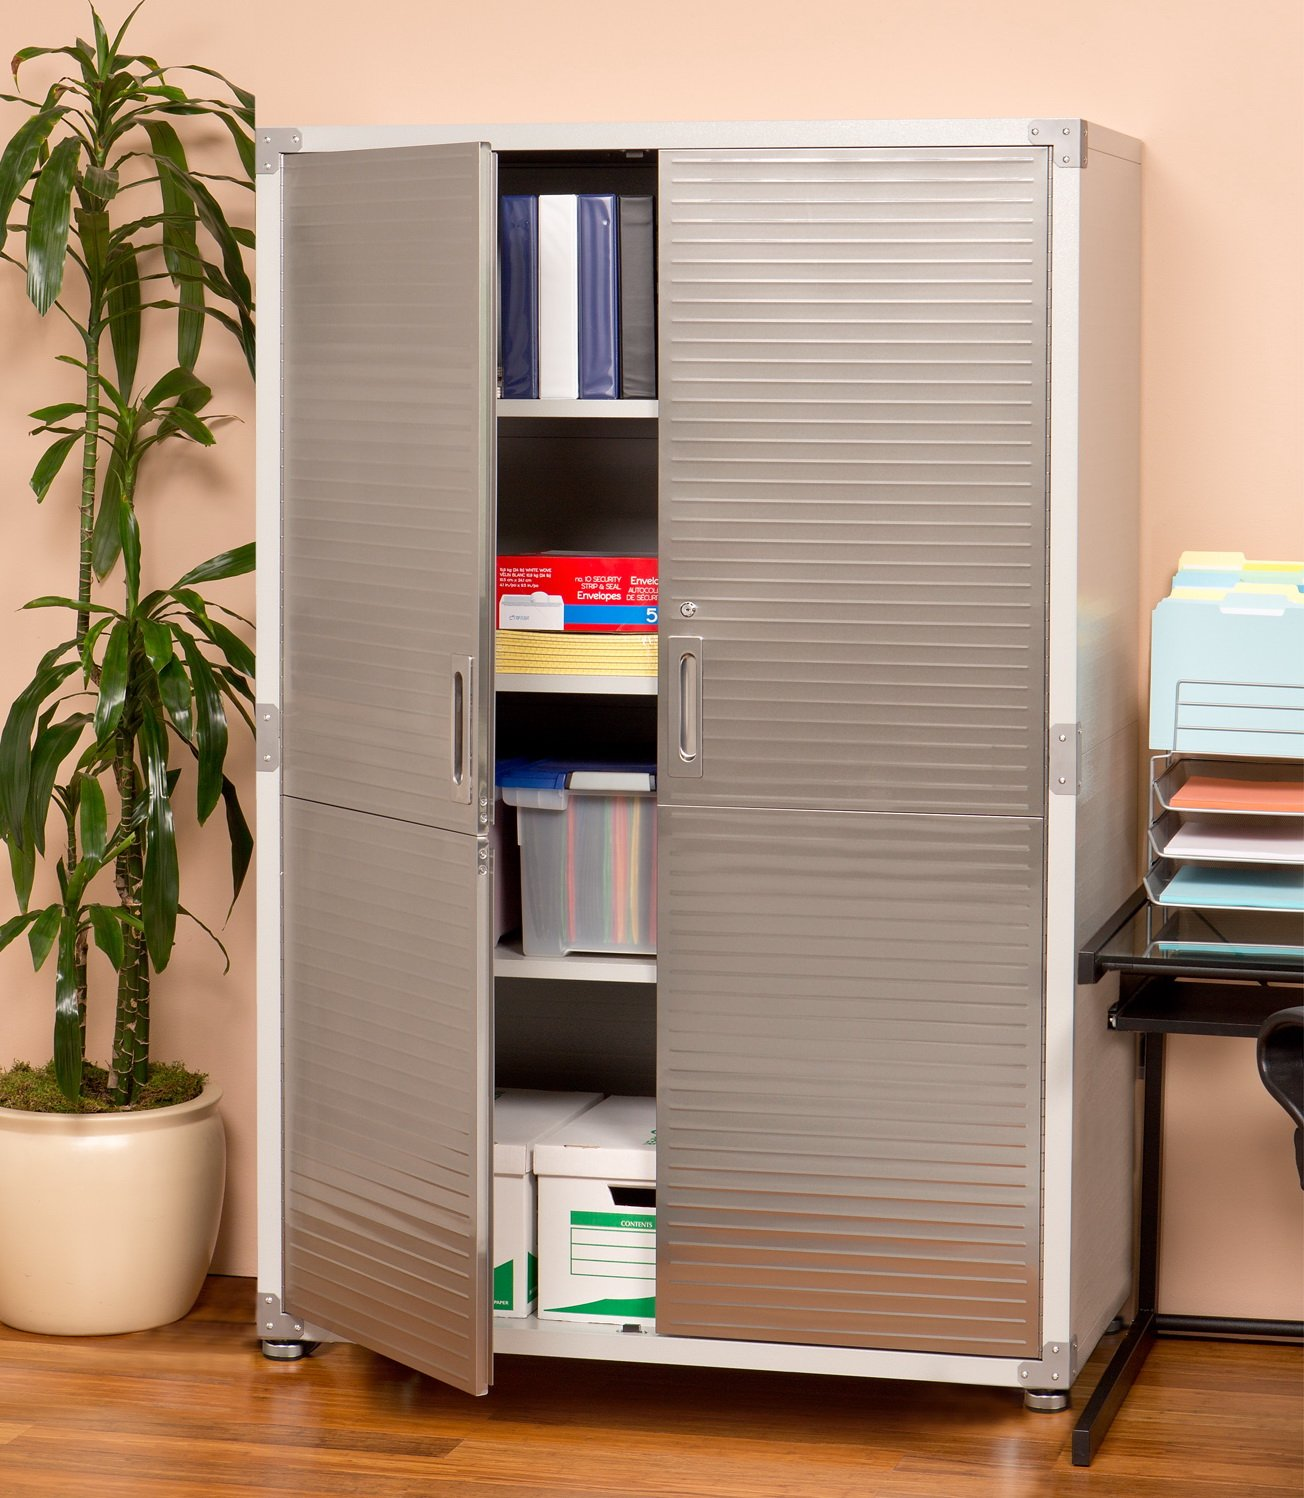 Amazon.com: Ultra HD Mega Storage Cabinet - Stainless Steel ...